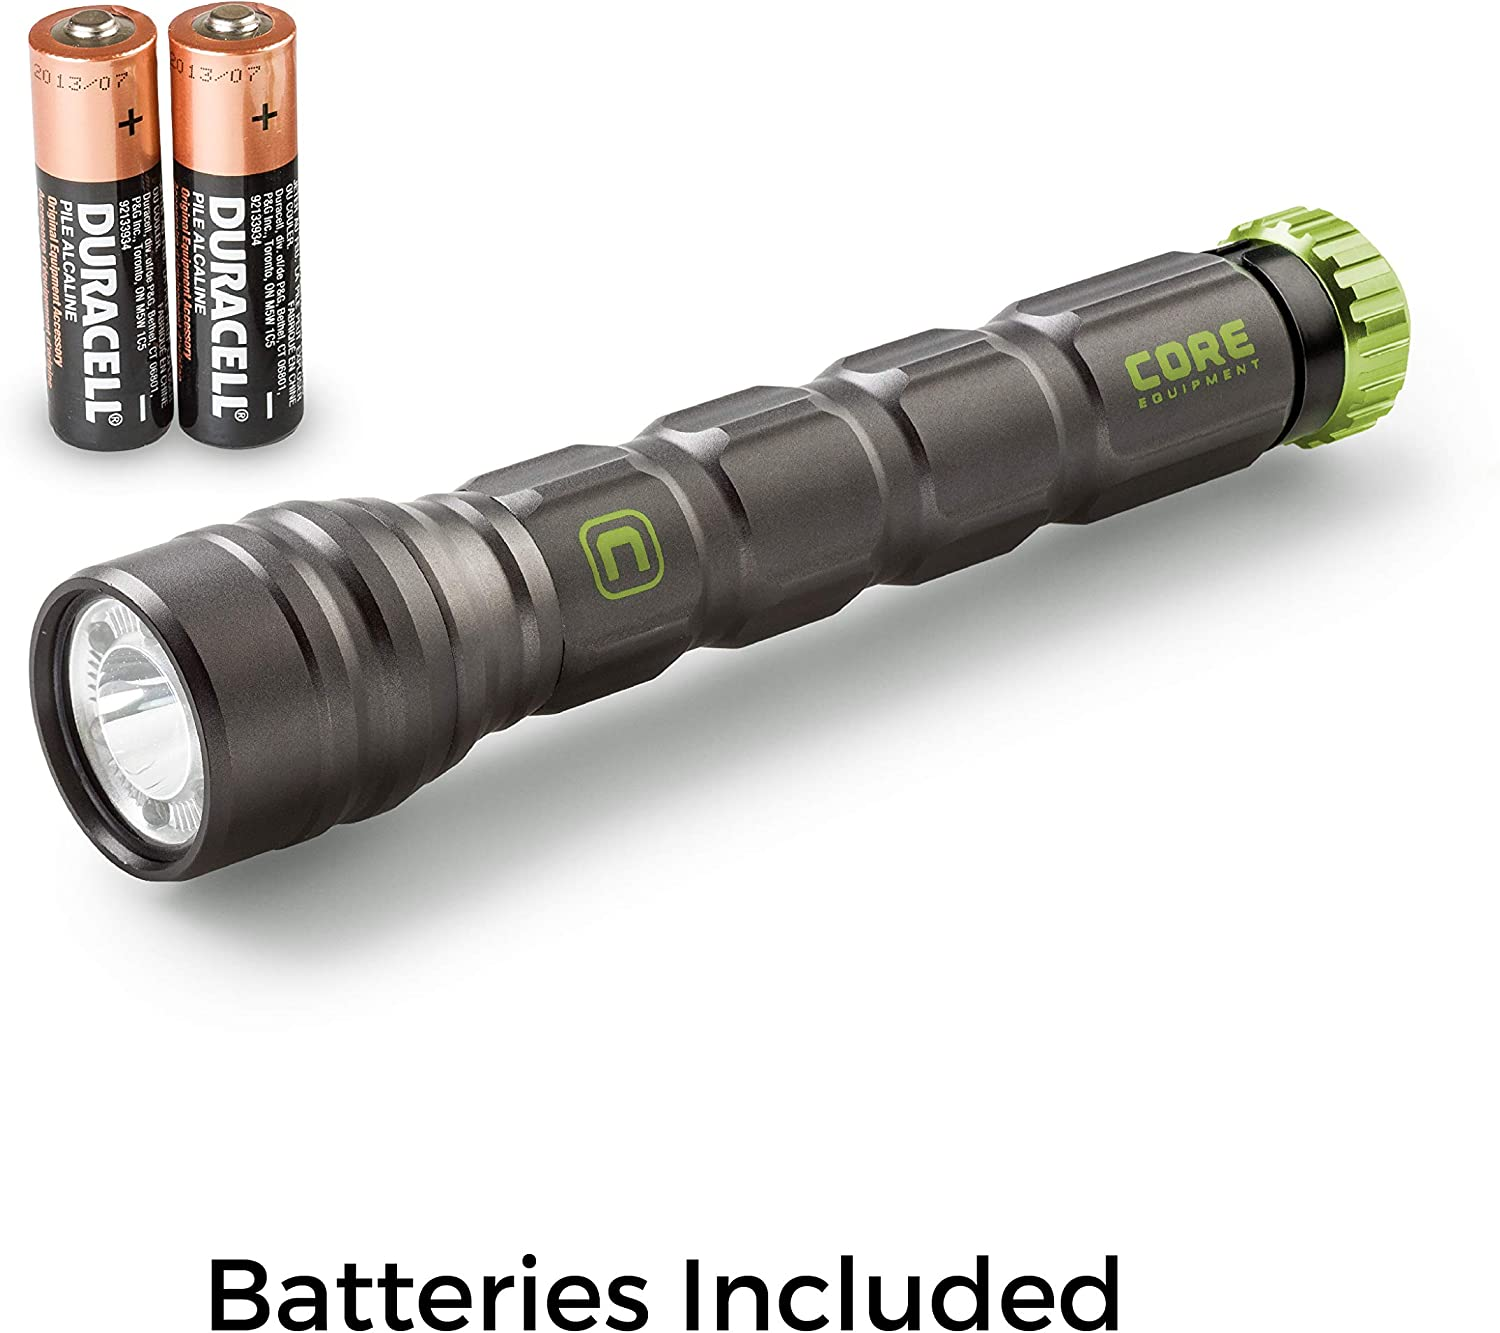 CORE CREE LED Flashlight, Multiple Modes, Aluminum, Batteries Included